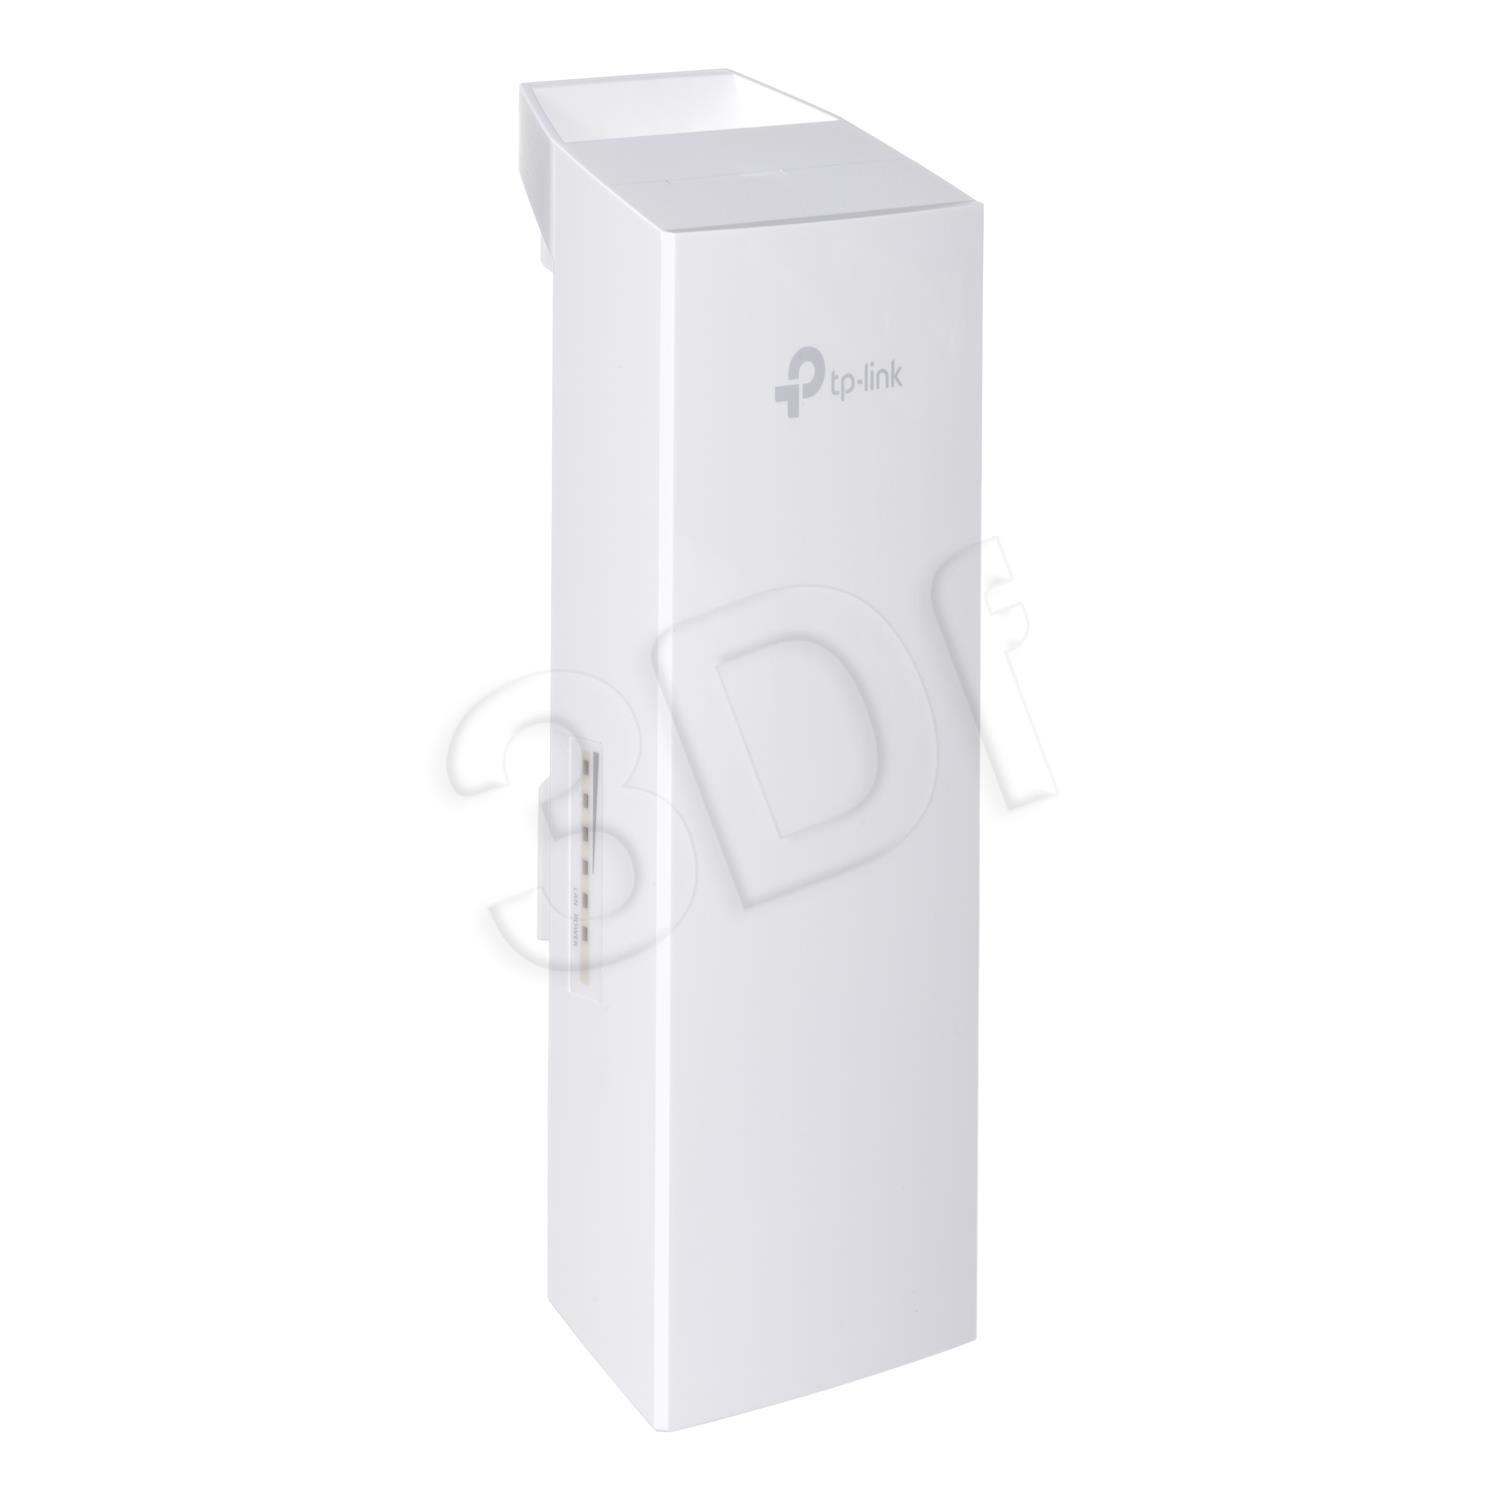 TP-LINK Outdoor 2.4GHz 300Mbps WLAN AccP Access point